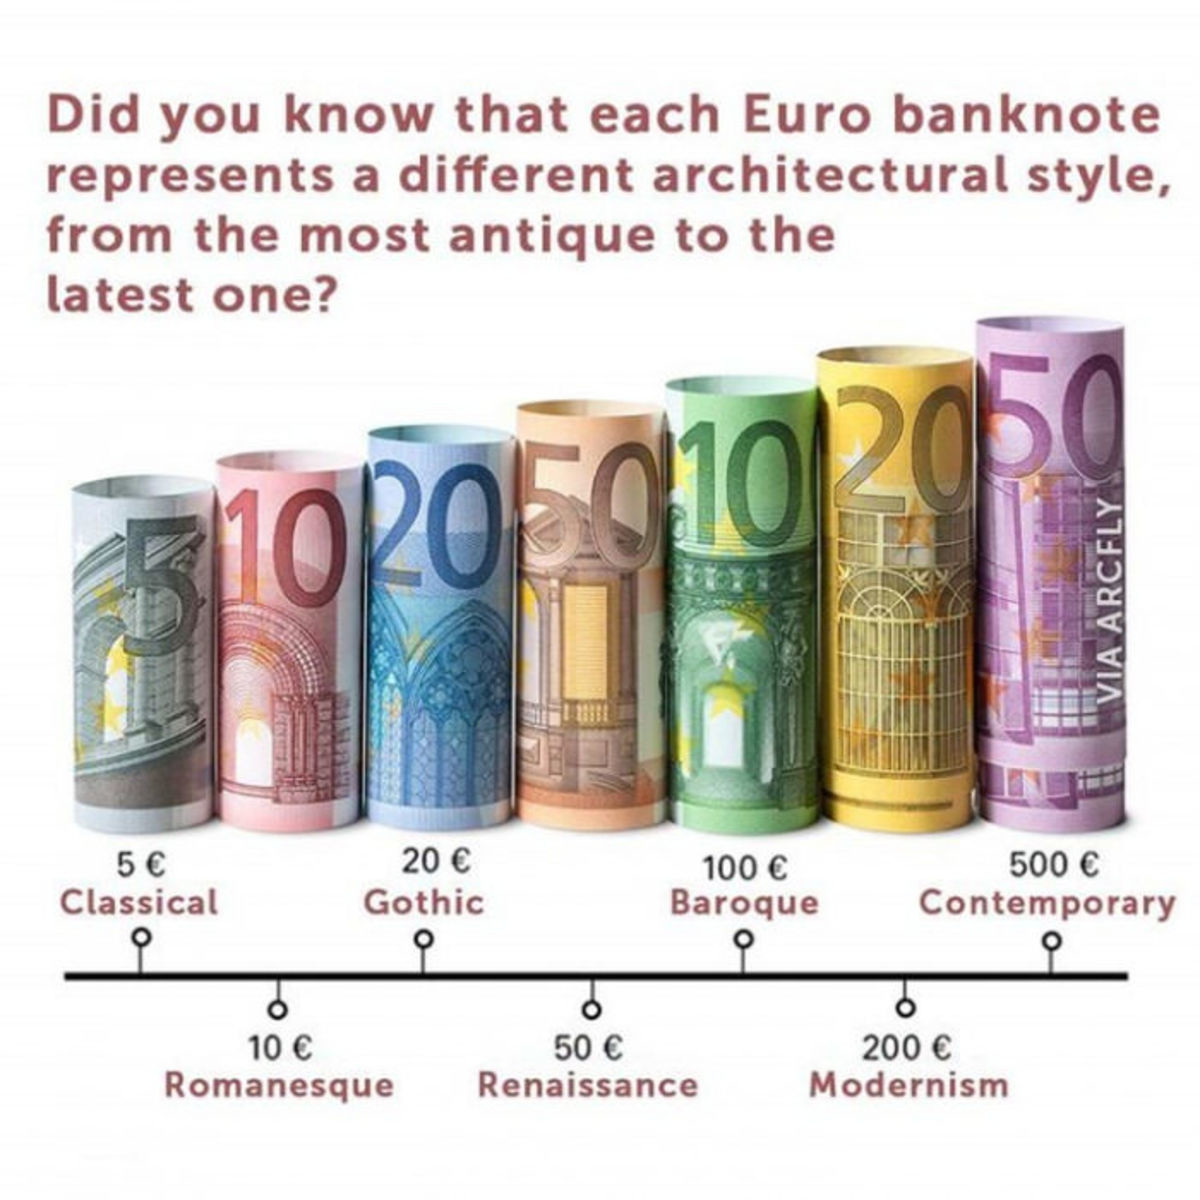 European Heritage. .. My broke ass didnt even know we had 500 euro bill. Let alone what buildings are on them.